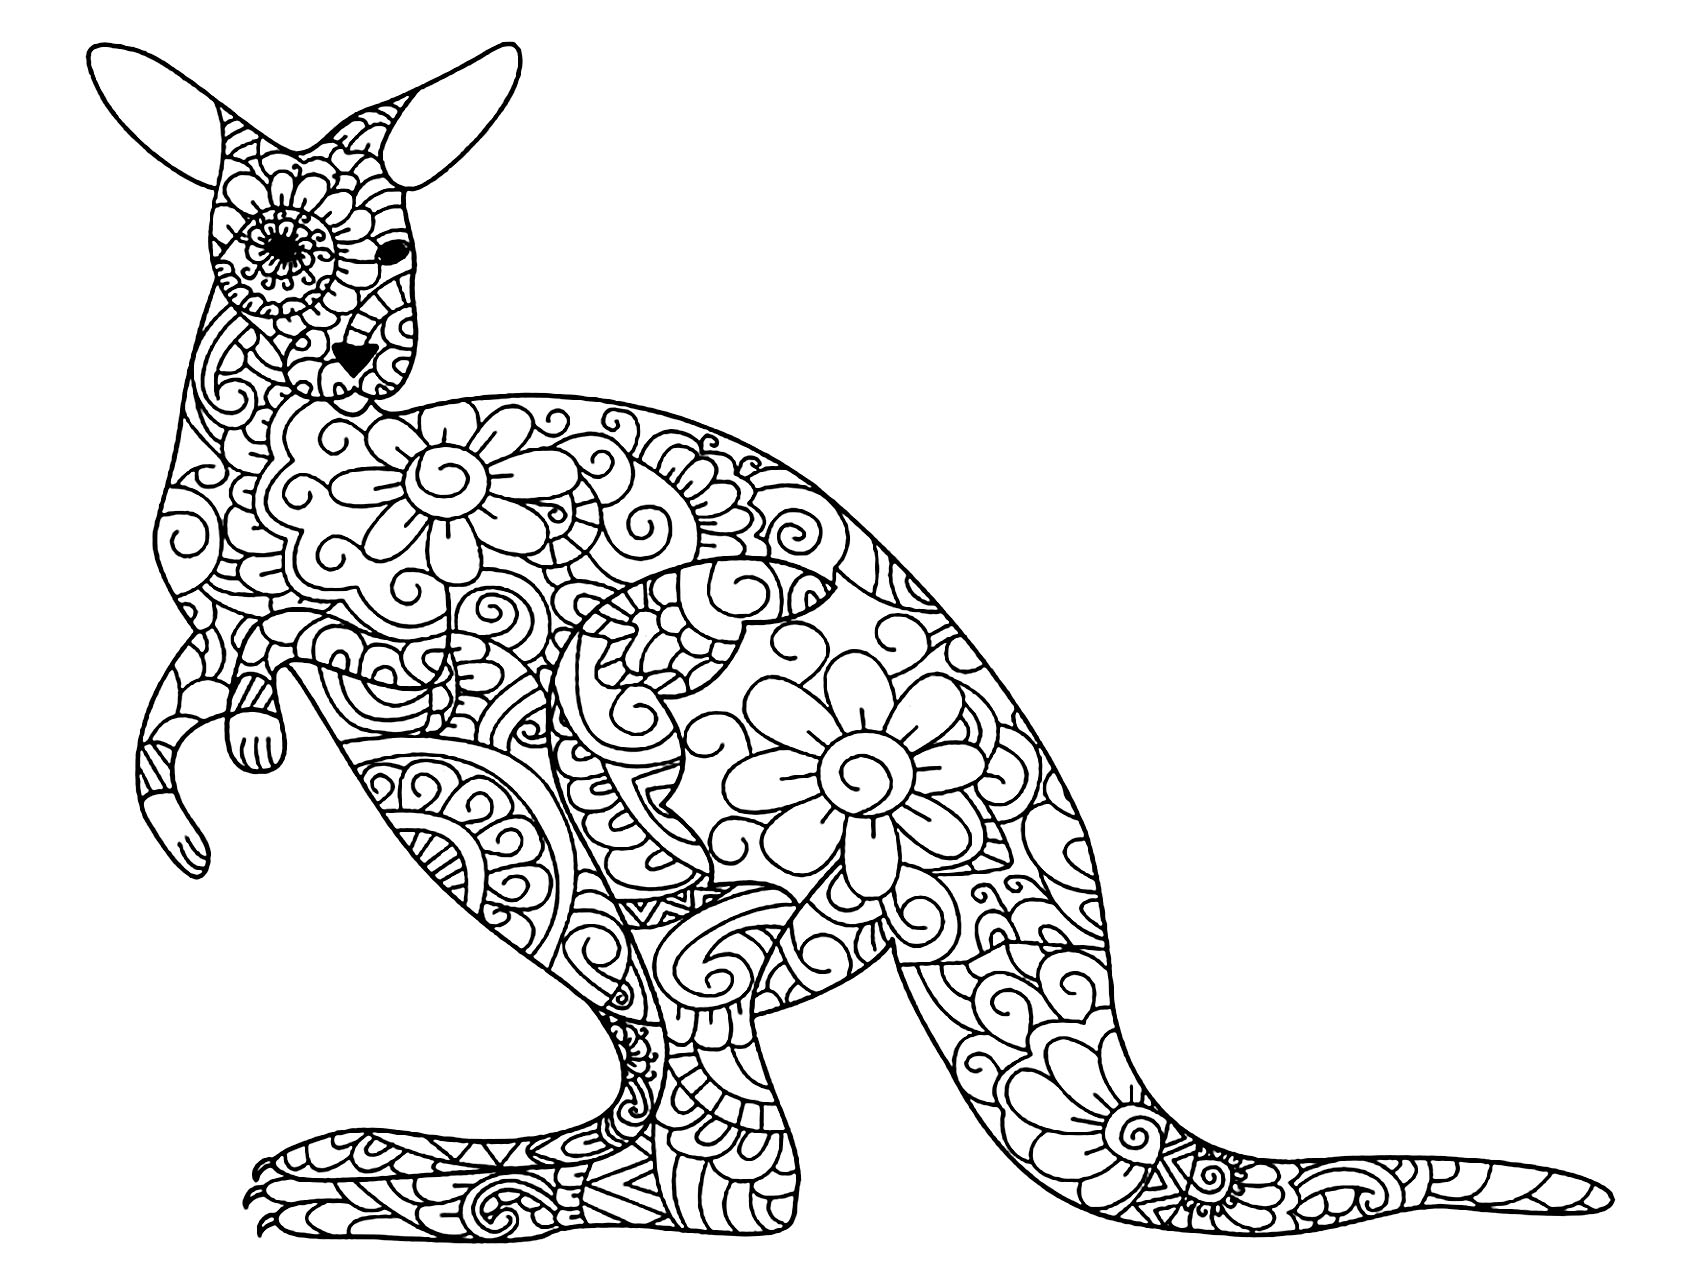 Printable Kangaroos coloring page to print and color